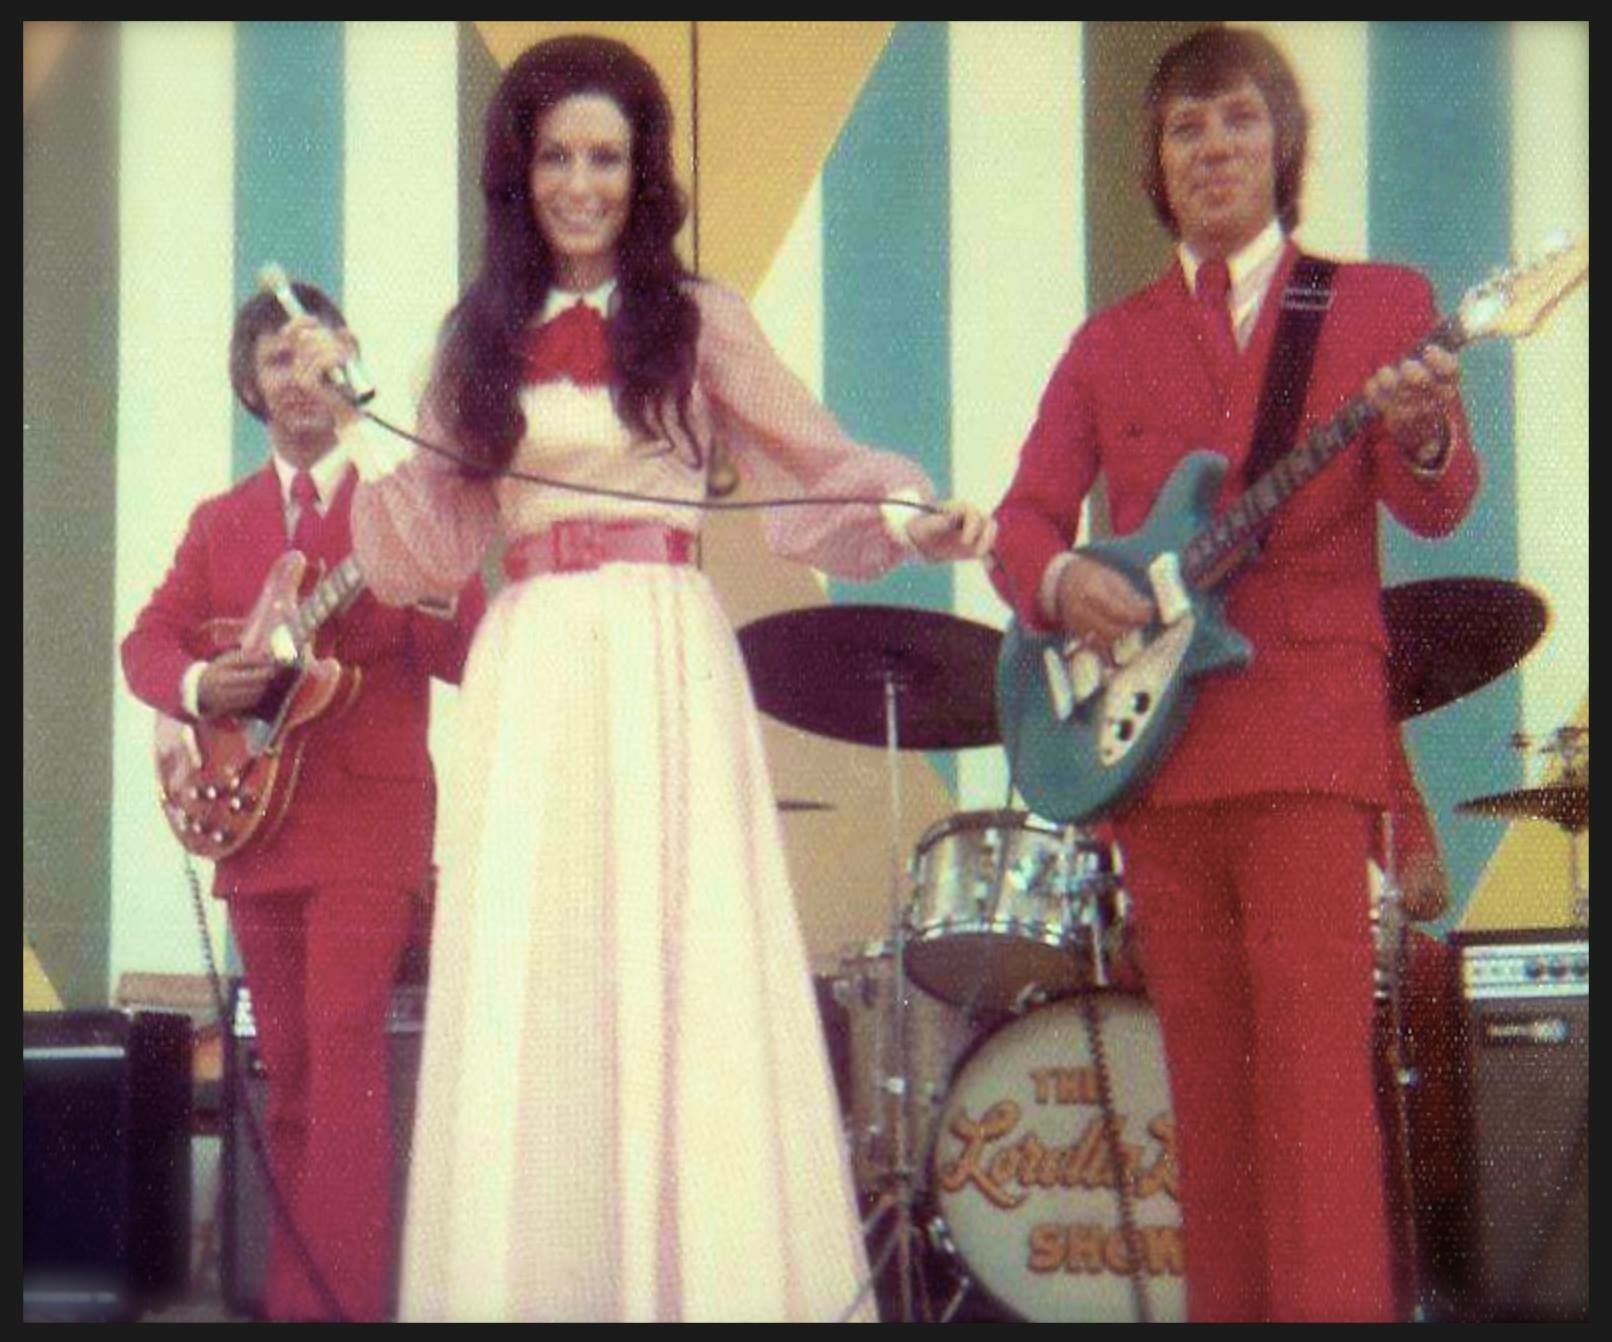 Loretta In Concert With Coal Miner S Band Members Dave Thornhill Left And Don Ballinger Courtesy Of L Vintage Western Wear Loretta Lynn Custom Cowboy Boots